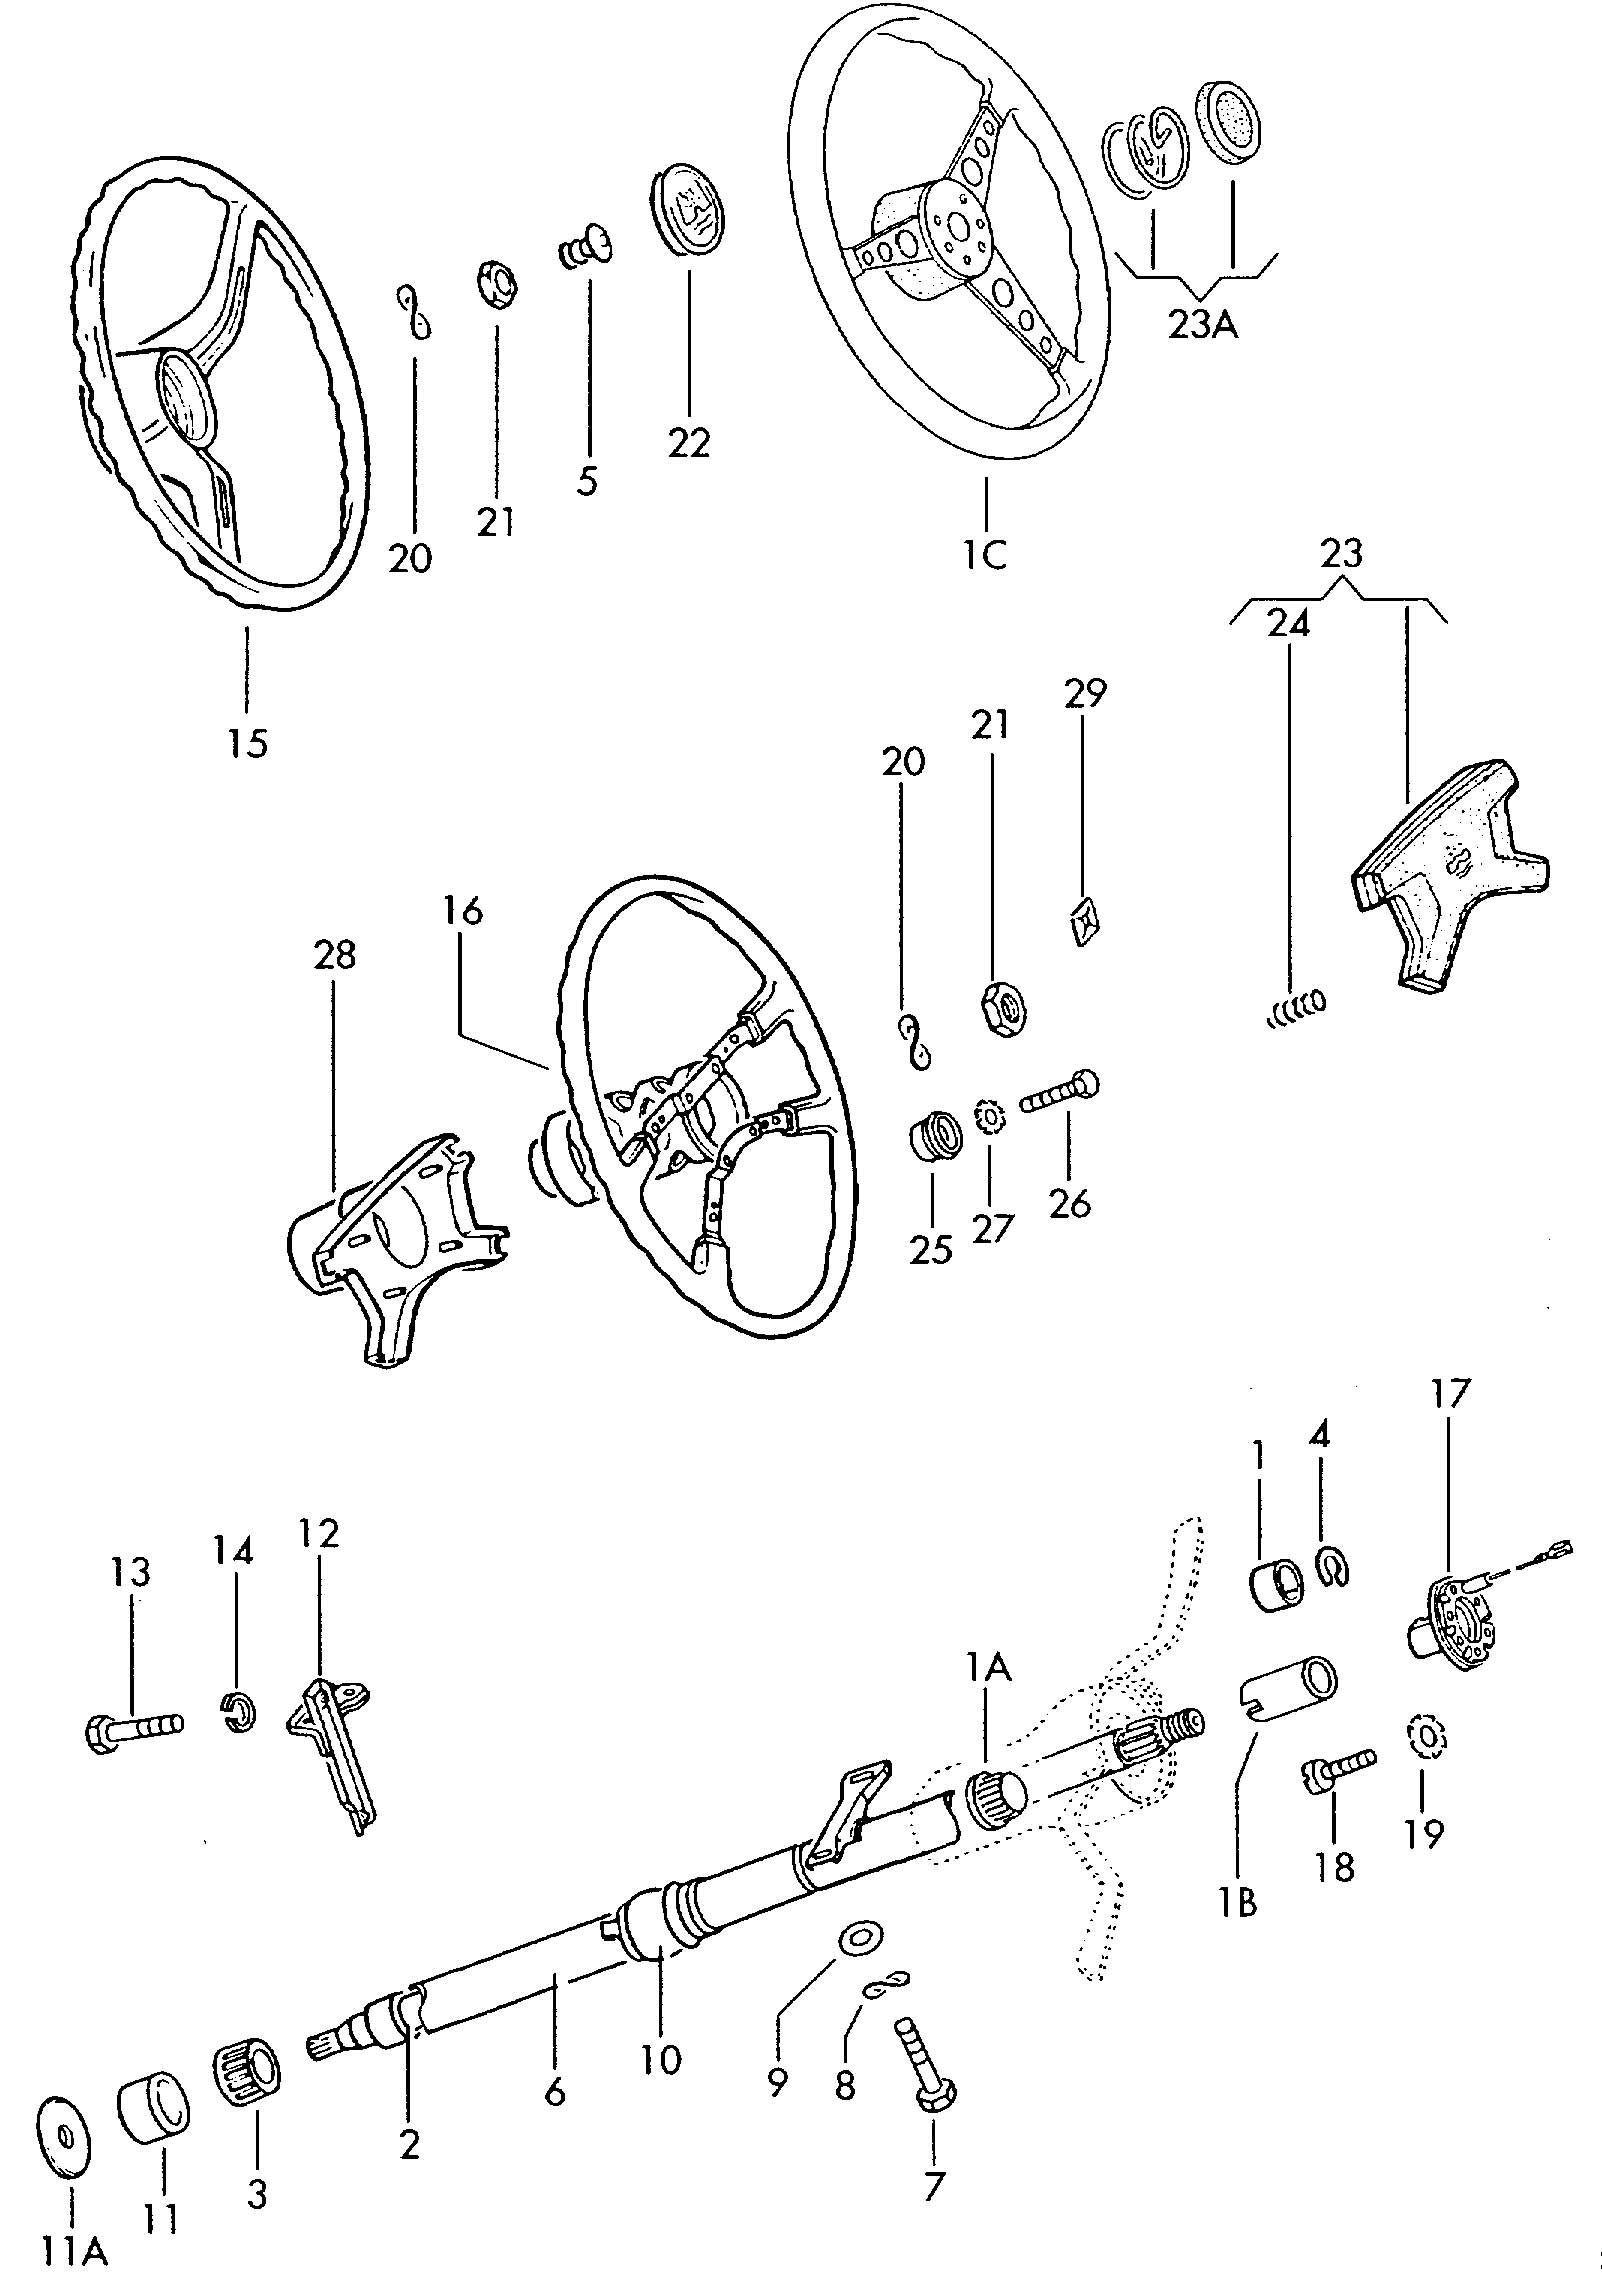 Assembly overview rear axle beam besides Vw Karmann Ghia Fuel System together with P 0900c15280266efc in addition 50 Hp Mercury Outboard Lower Unit Diagram as well 72 Vw Beetle Wiring Diagram. on volkswagen golf 1974